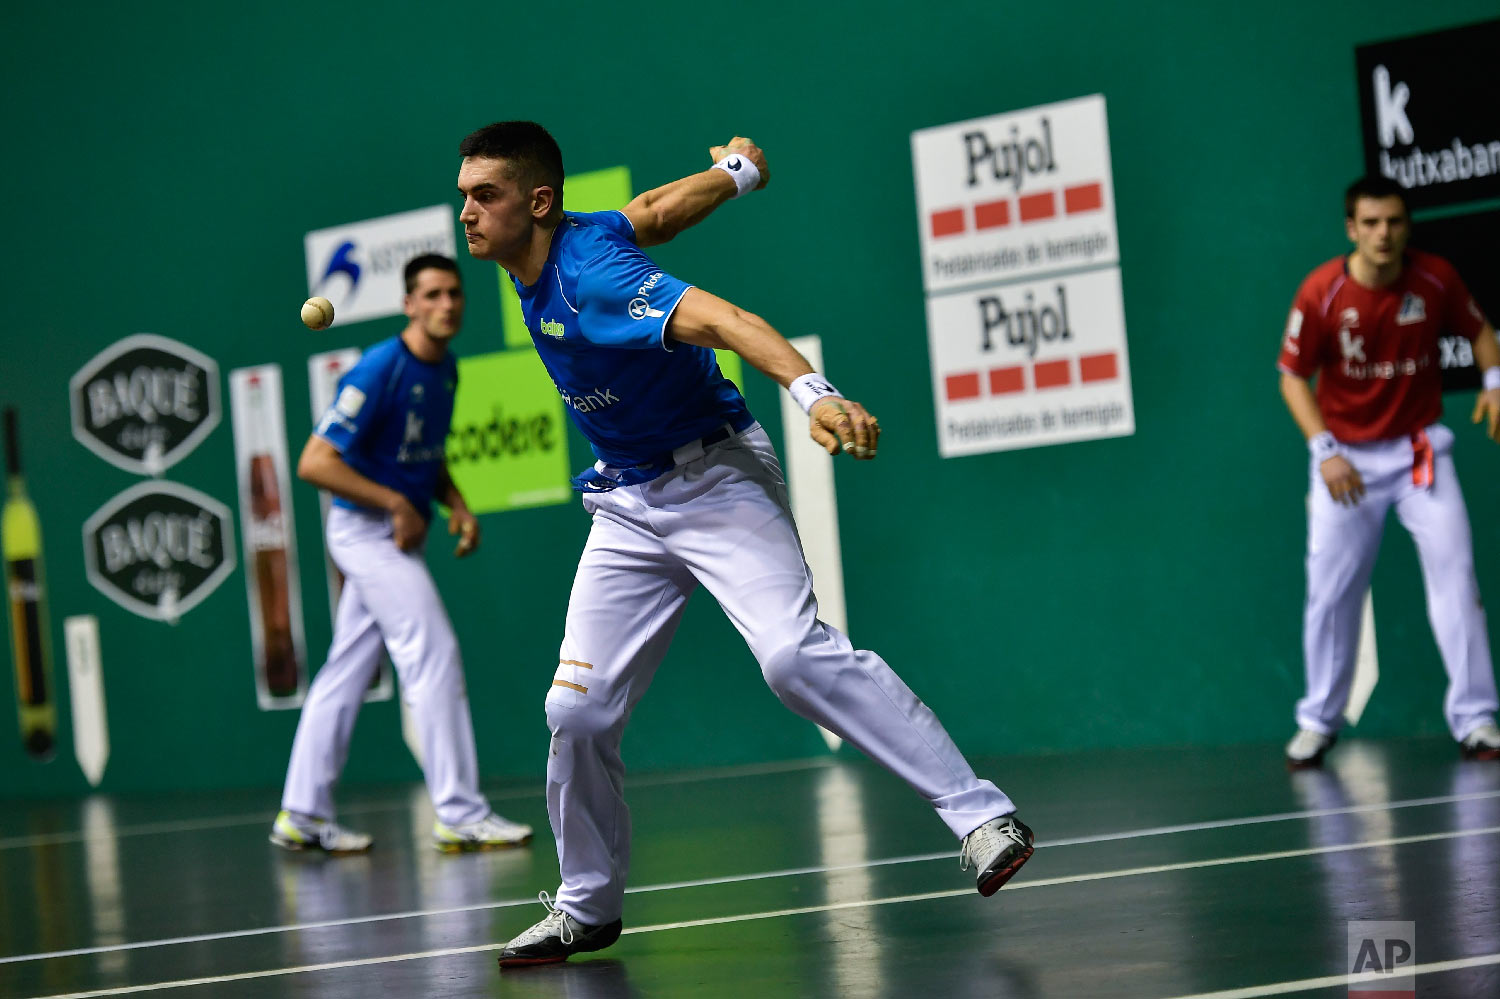 "Basque Ball player or ""pelotari"" Victor Esteban, returns the ball during a match at Labrit court or fronton, in Pamplona, northern Spain on March 9, 2019. (AP Photo/Alvaro Barrientos)"